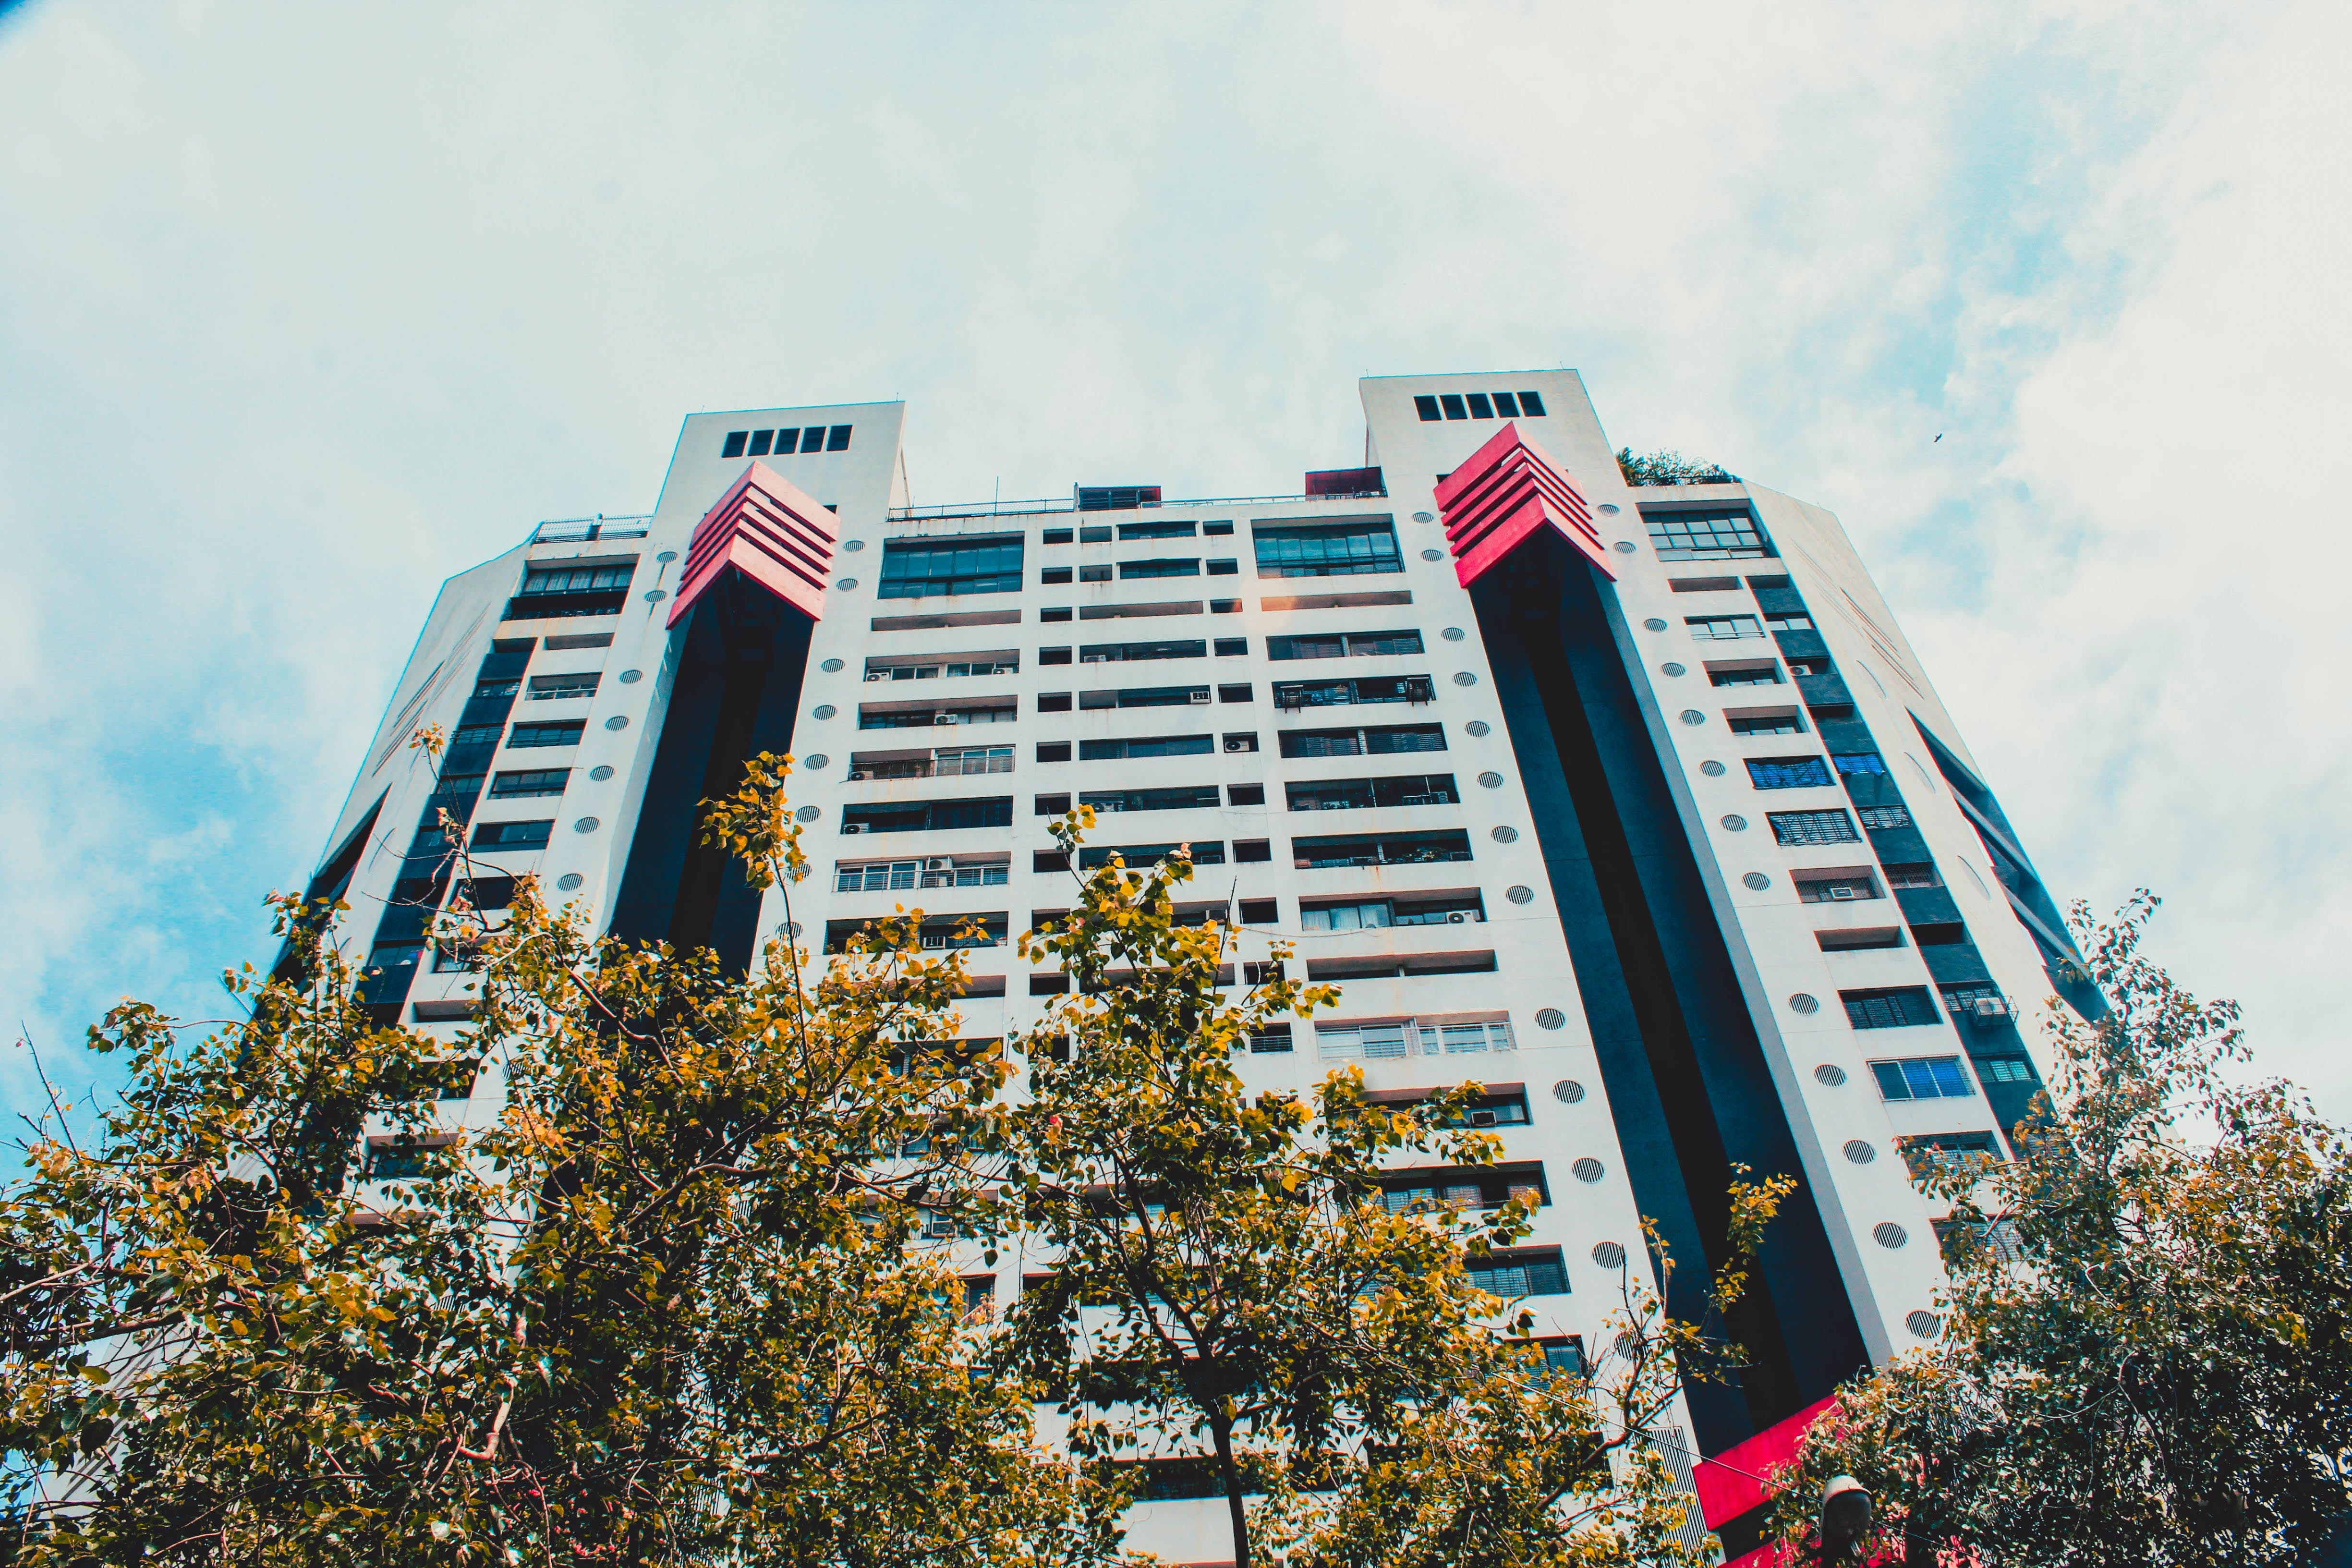 Free stock photo of apartment buildings, architectural design, buldings, sky